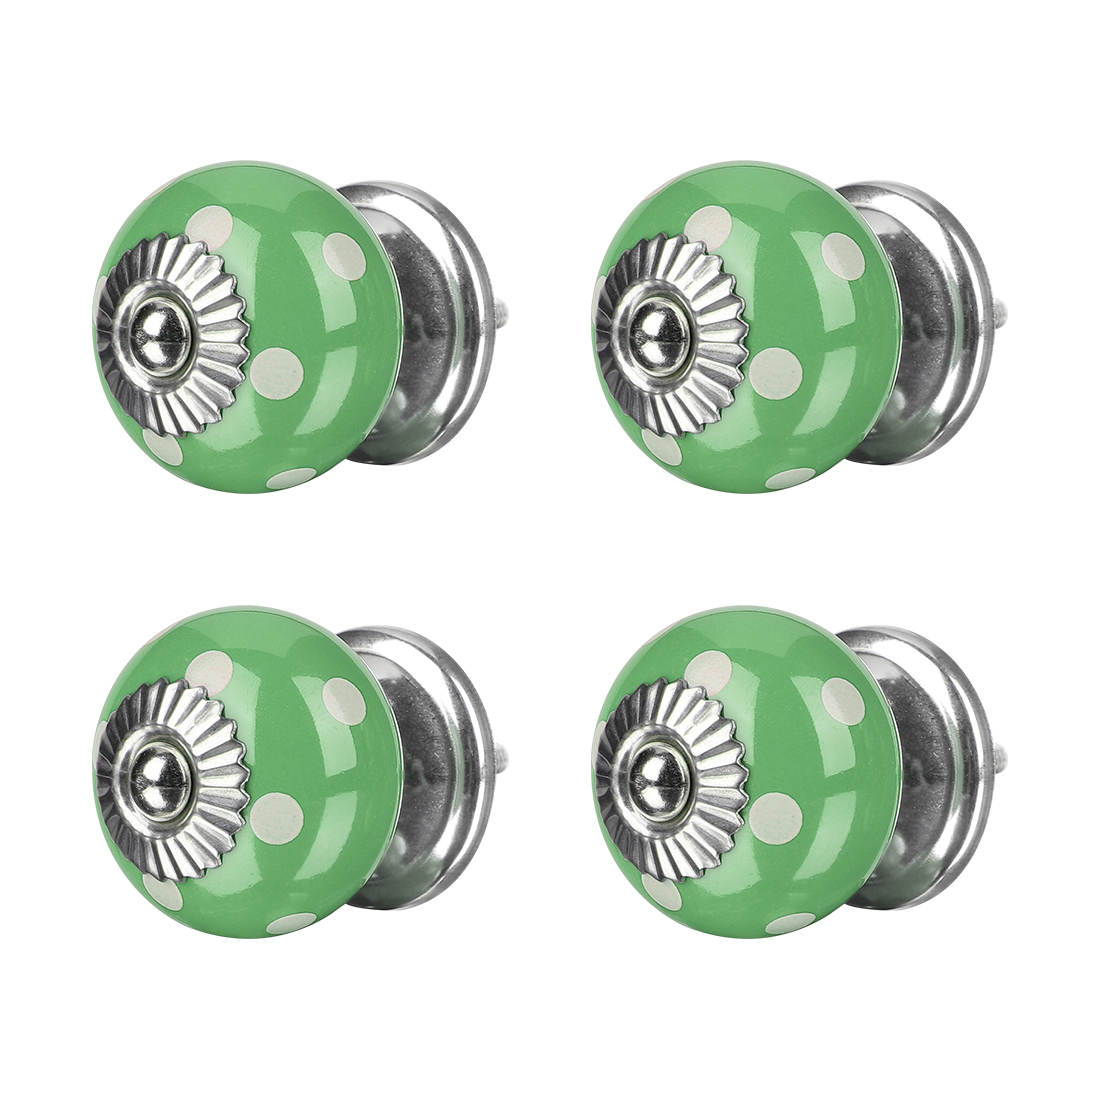 Ceramic Knobs Round Drawer Pull Handle Cupboard Wardrobe Replacement 4pcs Green